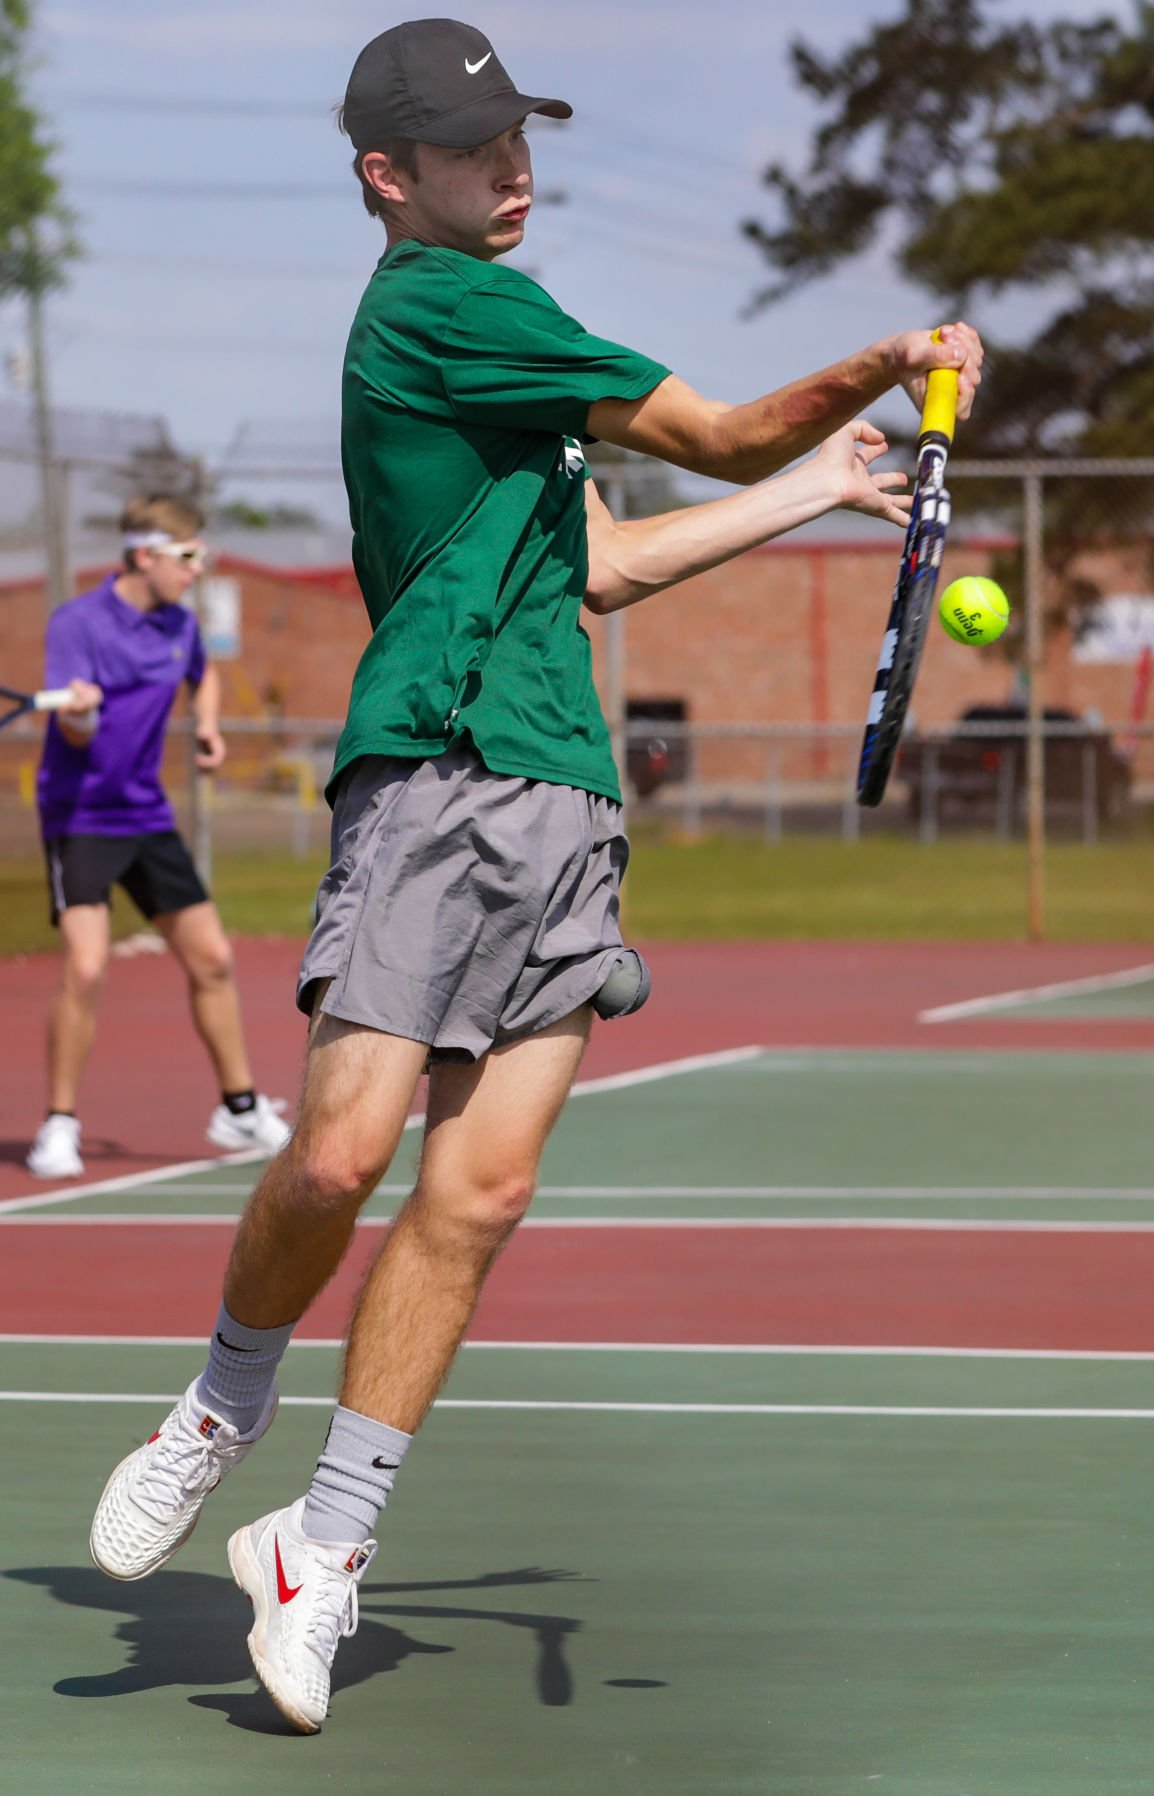 Walker at Denham Springs tennis Bryce Wadenpfuhl